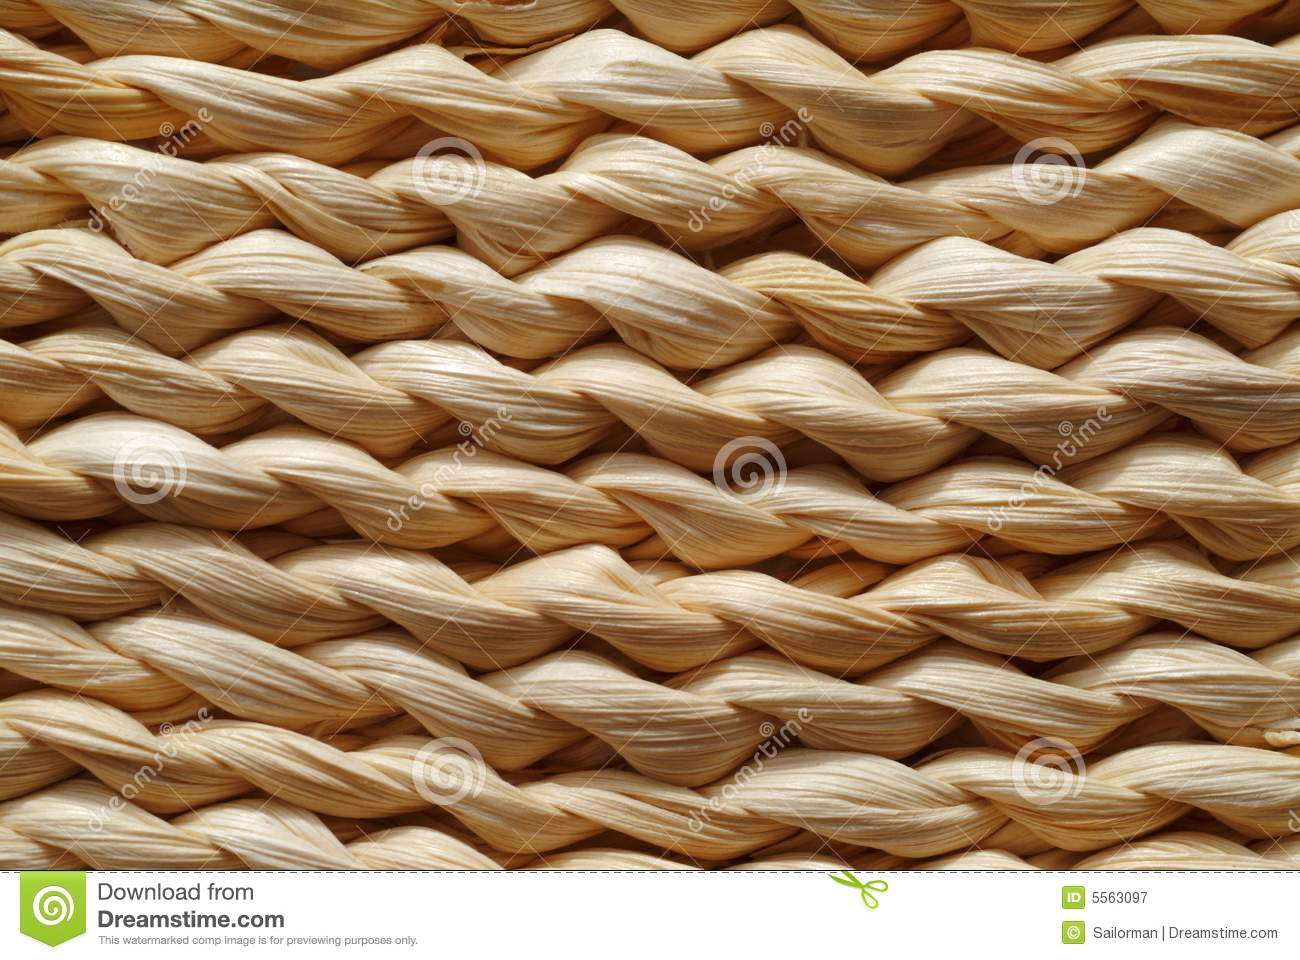 Woven Seagrass Texture Royalty Free Stock Photography